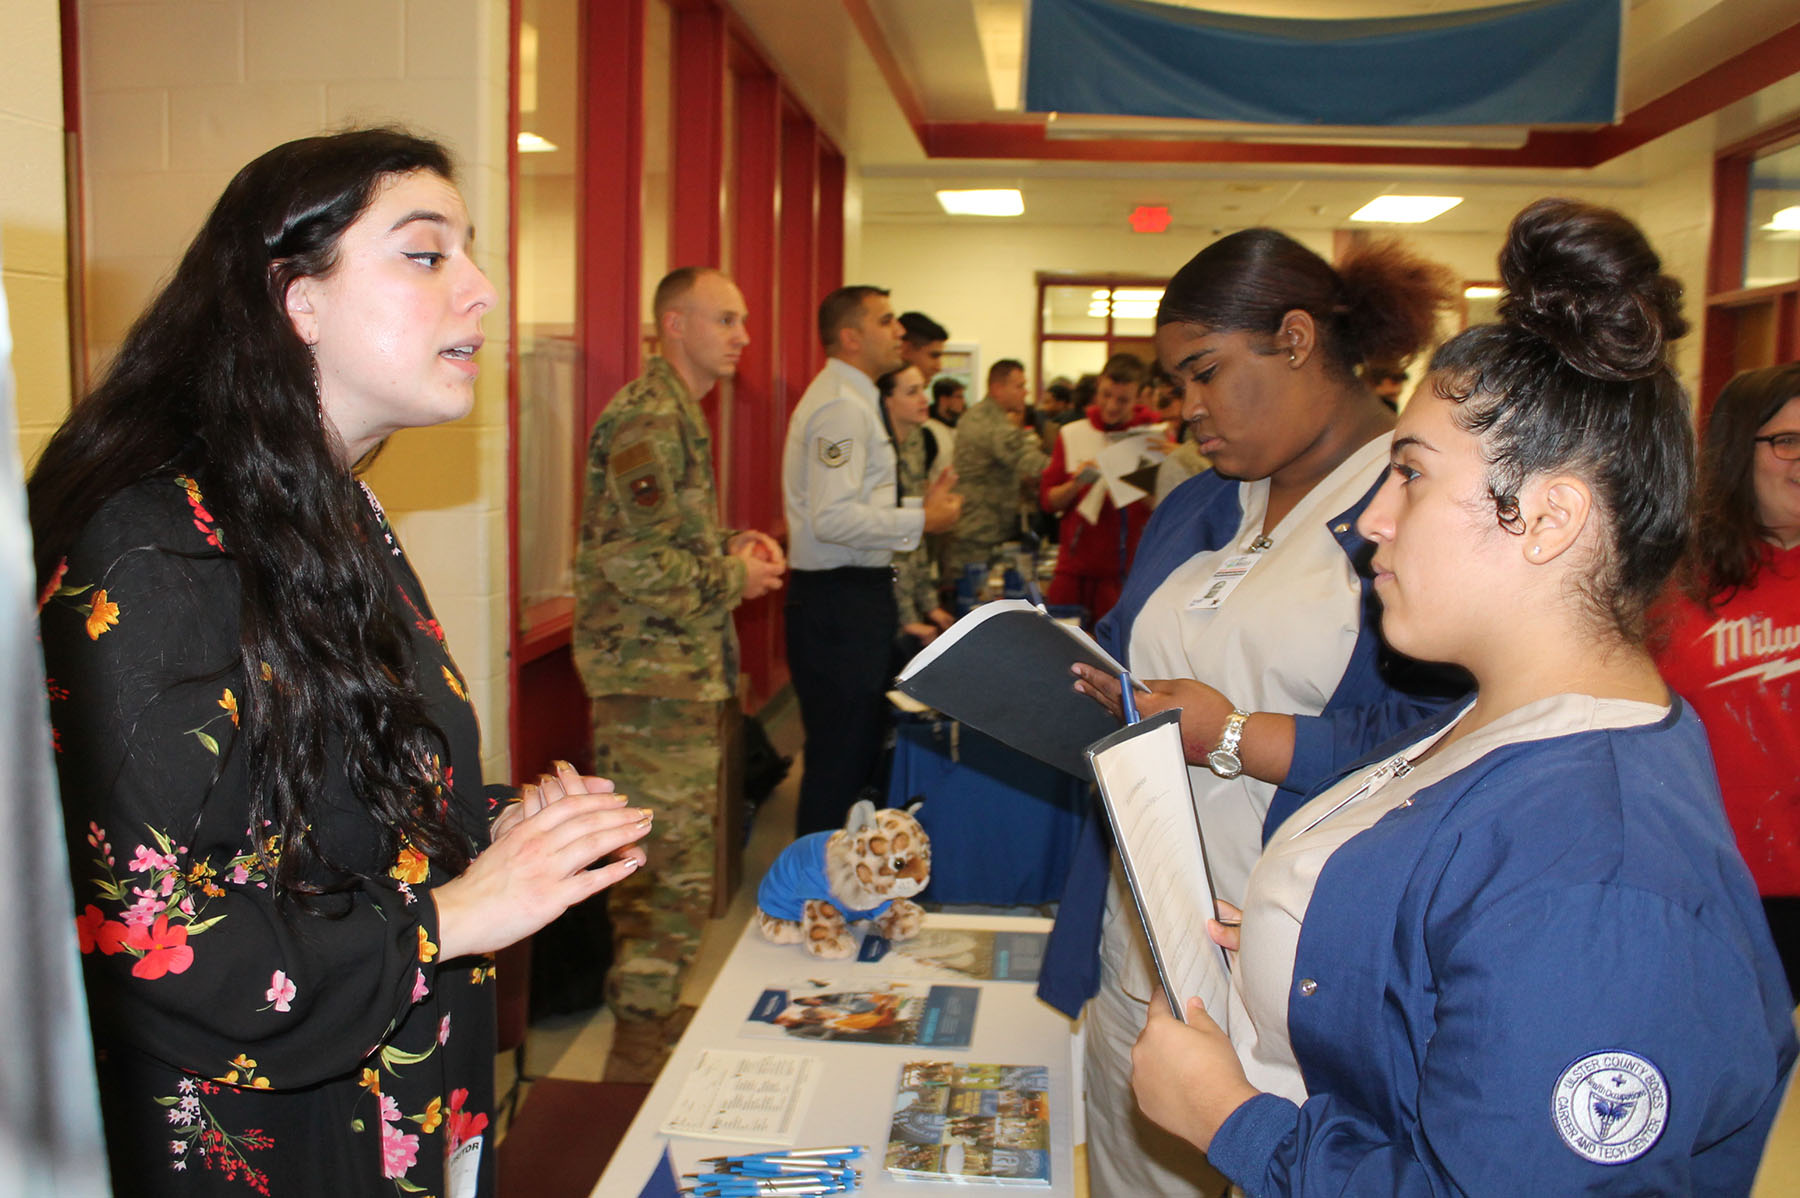 Ulster BOCES Hosts Annual College Day